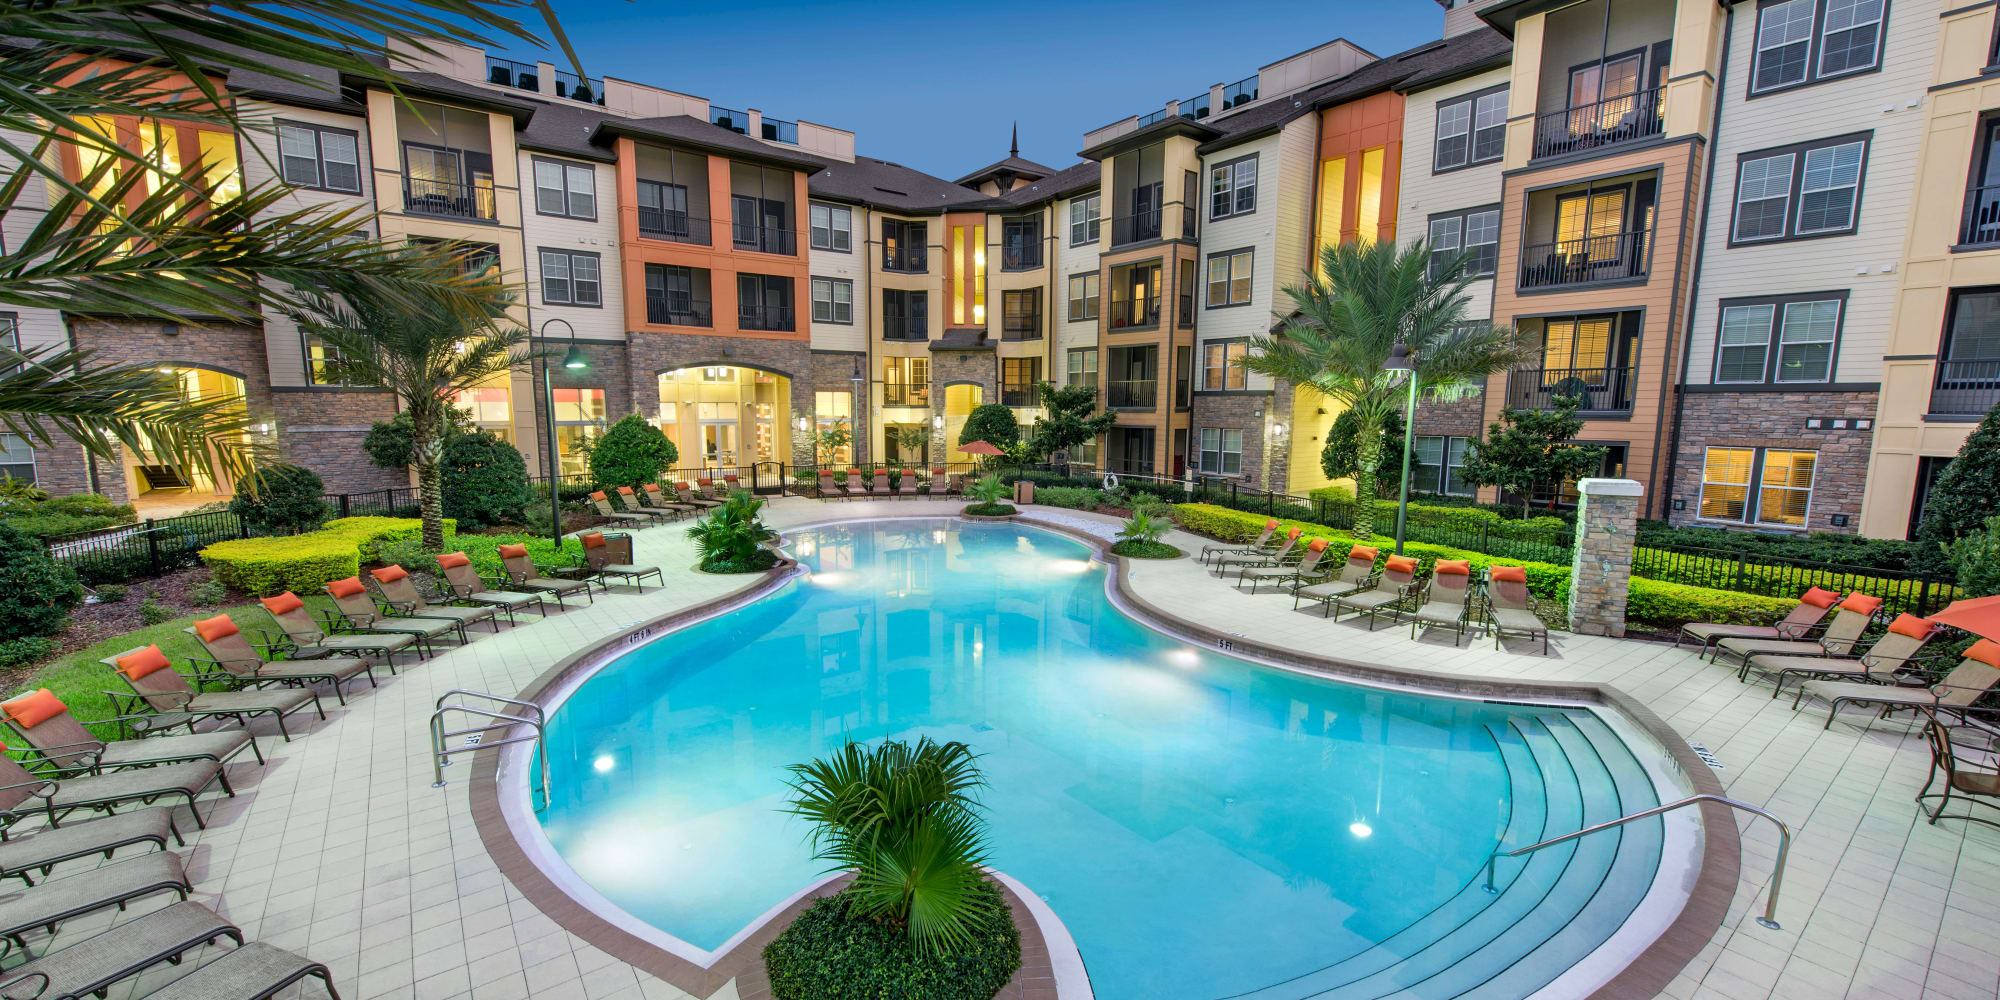 Apartments at The Courtney at Universal Boulevard in Orlando Florida